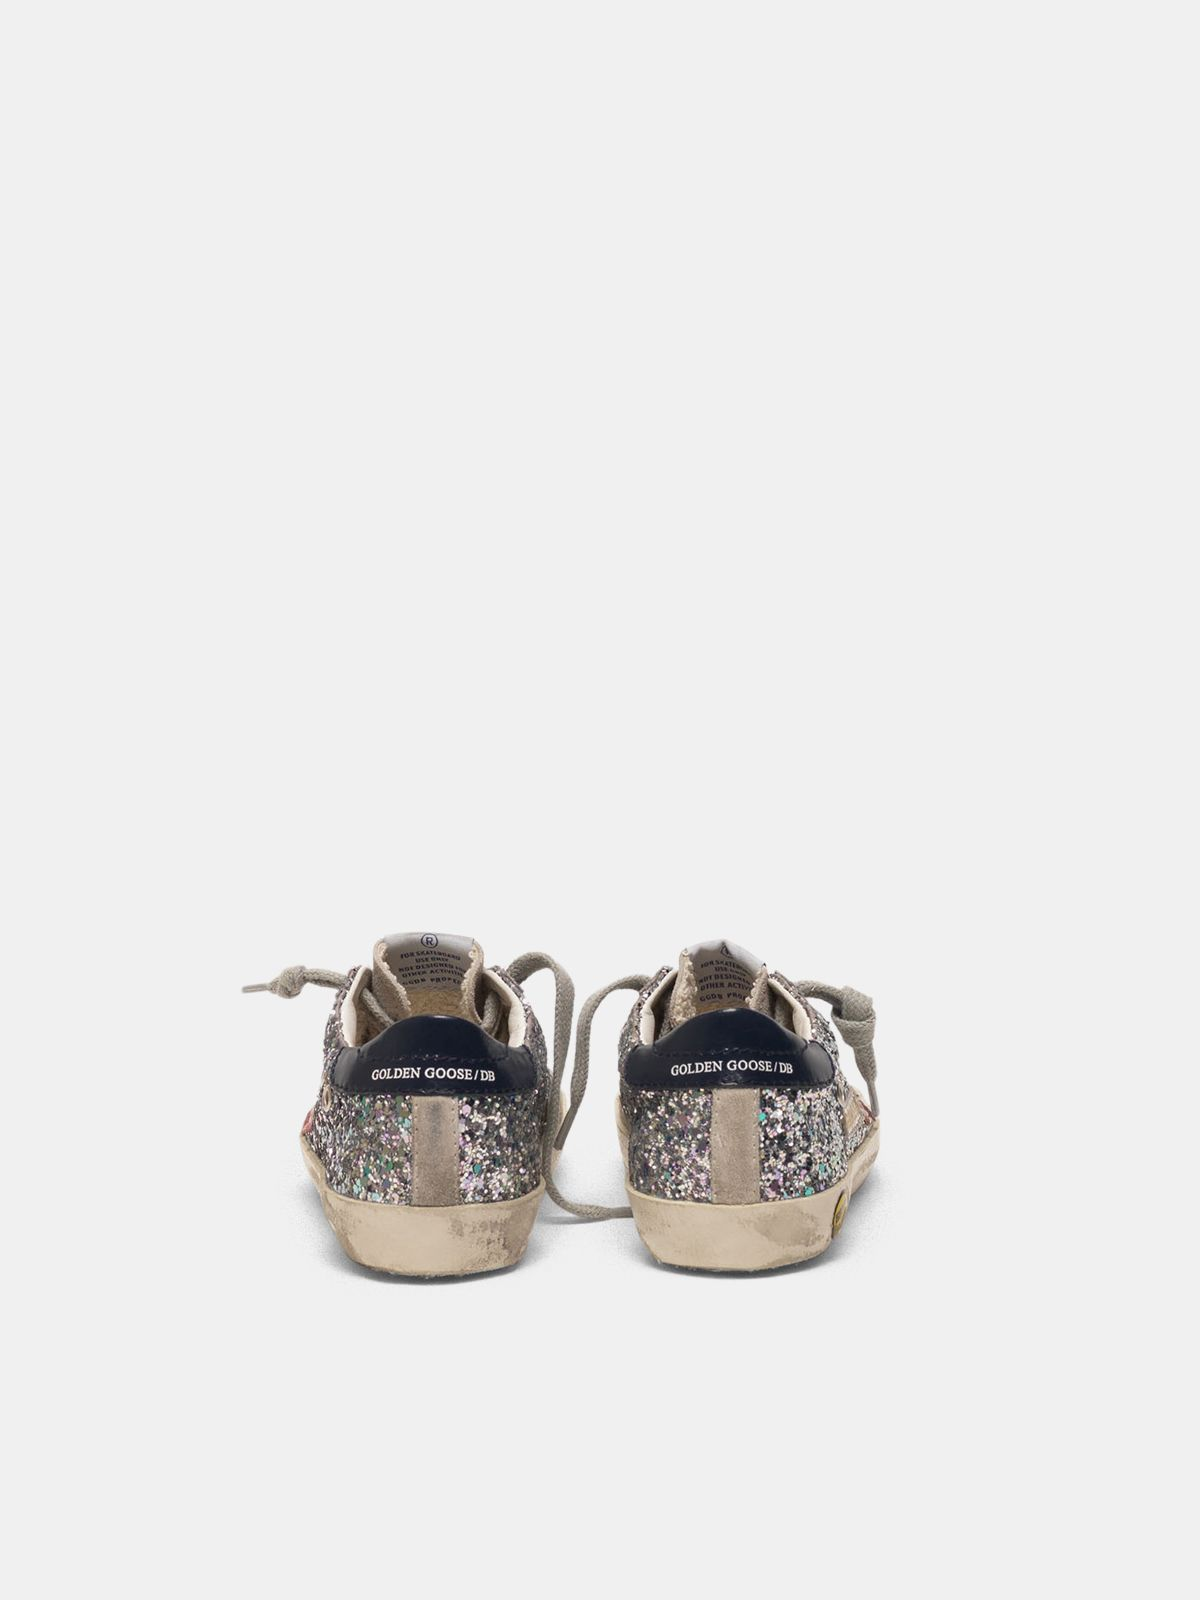 Golden Goose - Super-Star sneakers in glitter with pink star in